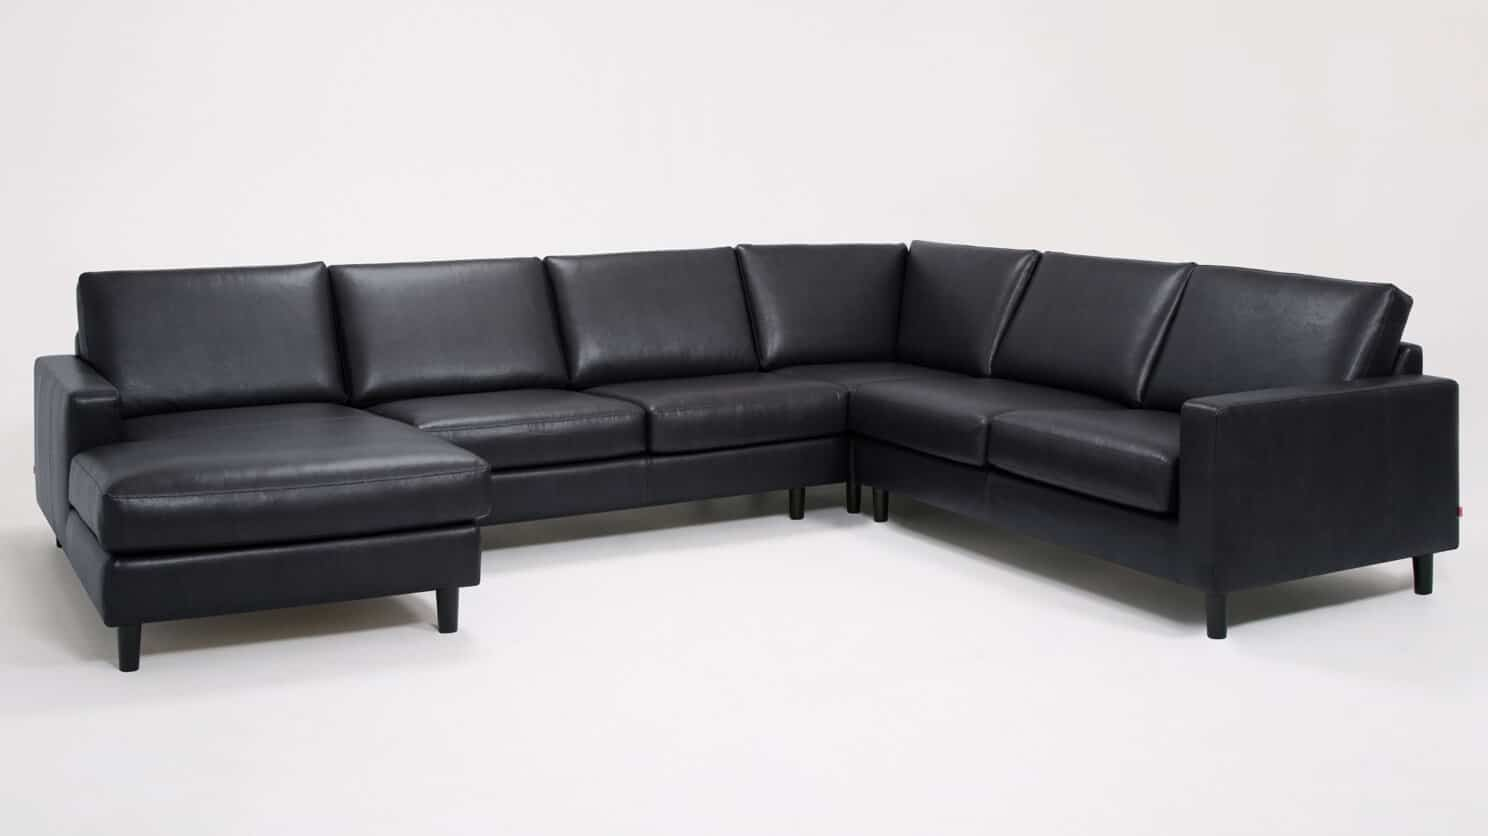 36116 sl cs al sc 3 sectionals oskar sectional broadway onyx